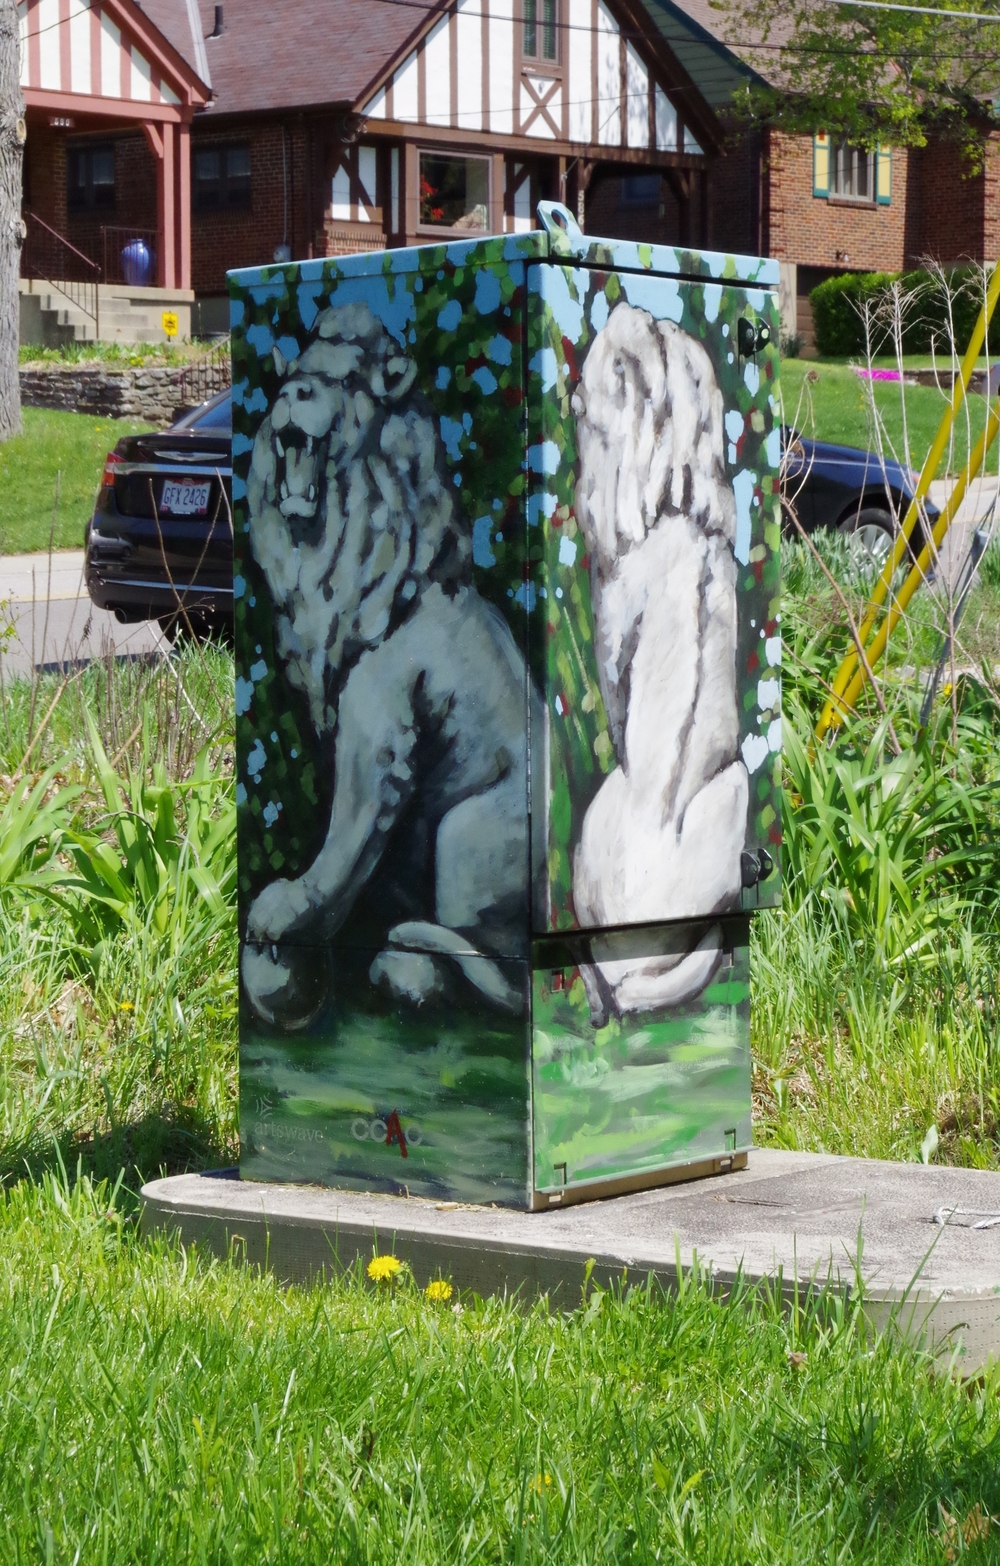 Cincinnati Bell utility box painting Clifton, Cincinnati, Ohio, 2014